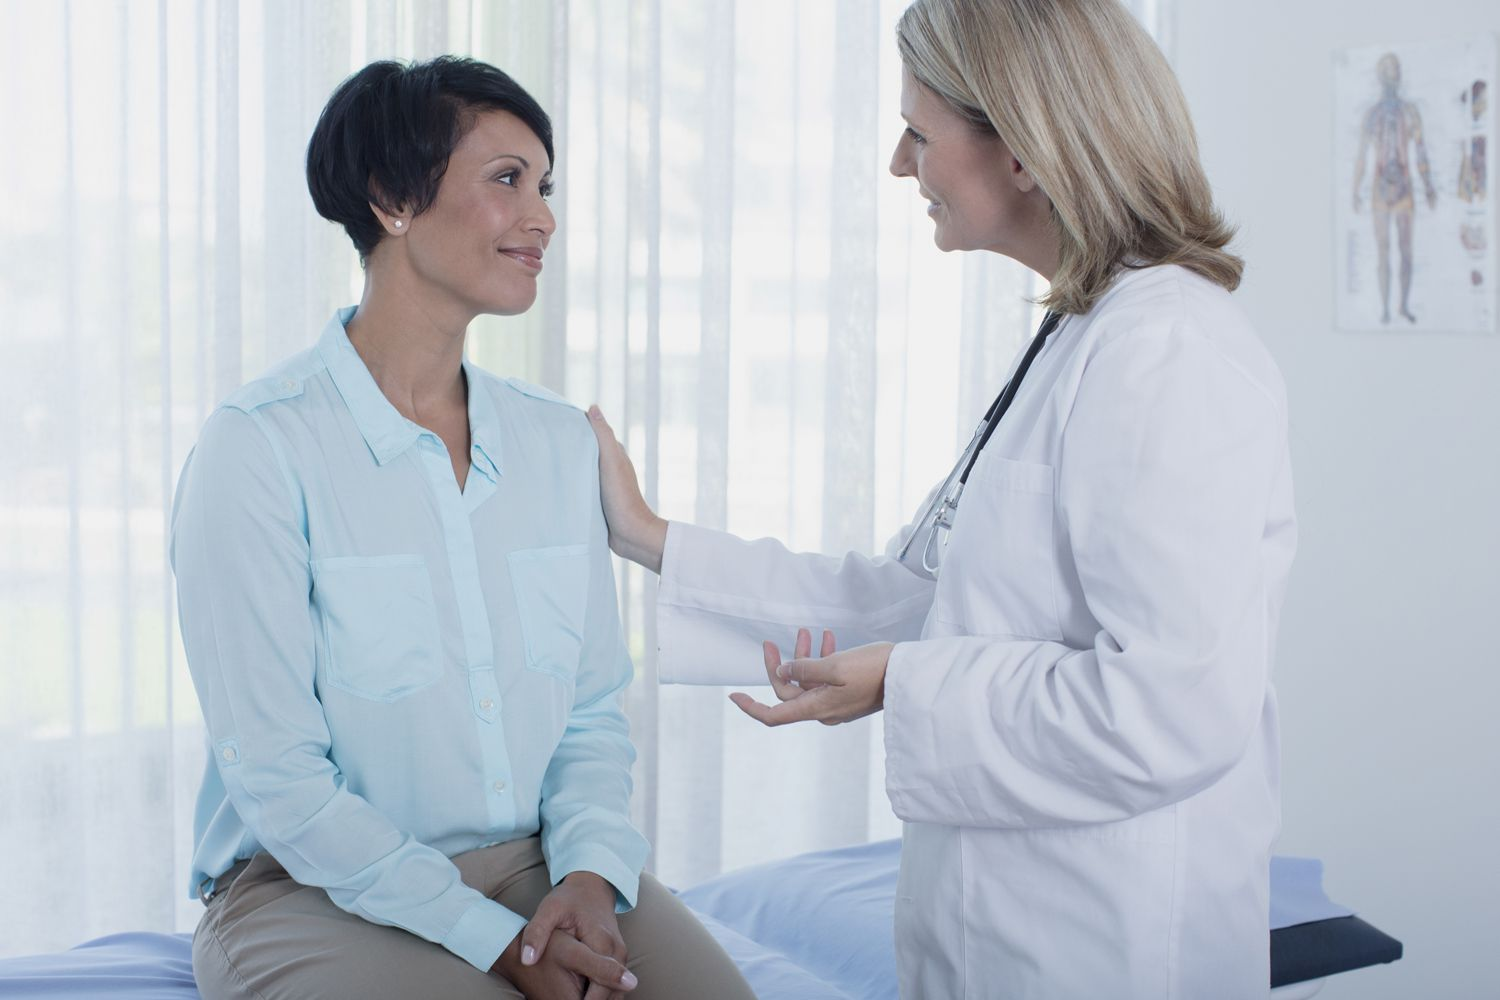 A doctor meets with a patient.